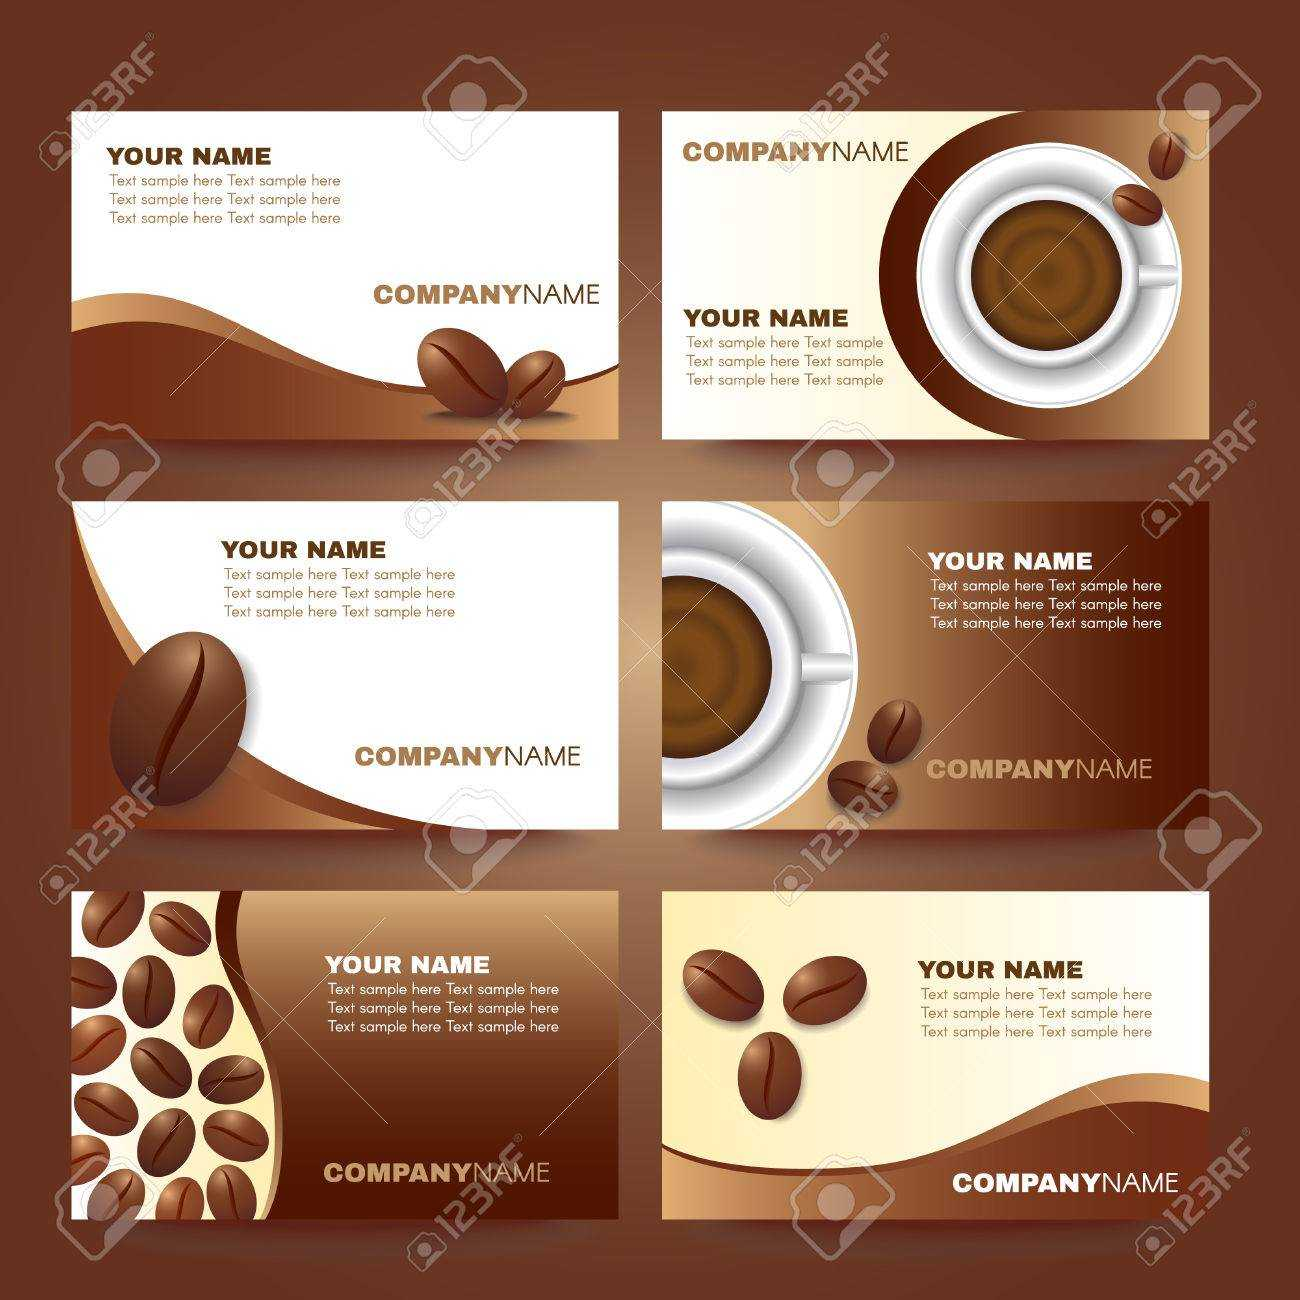 Coffee Business Card Template Vector Set Design Throughout Coffee Business Card Template Free